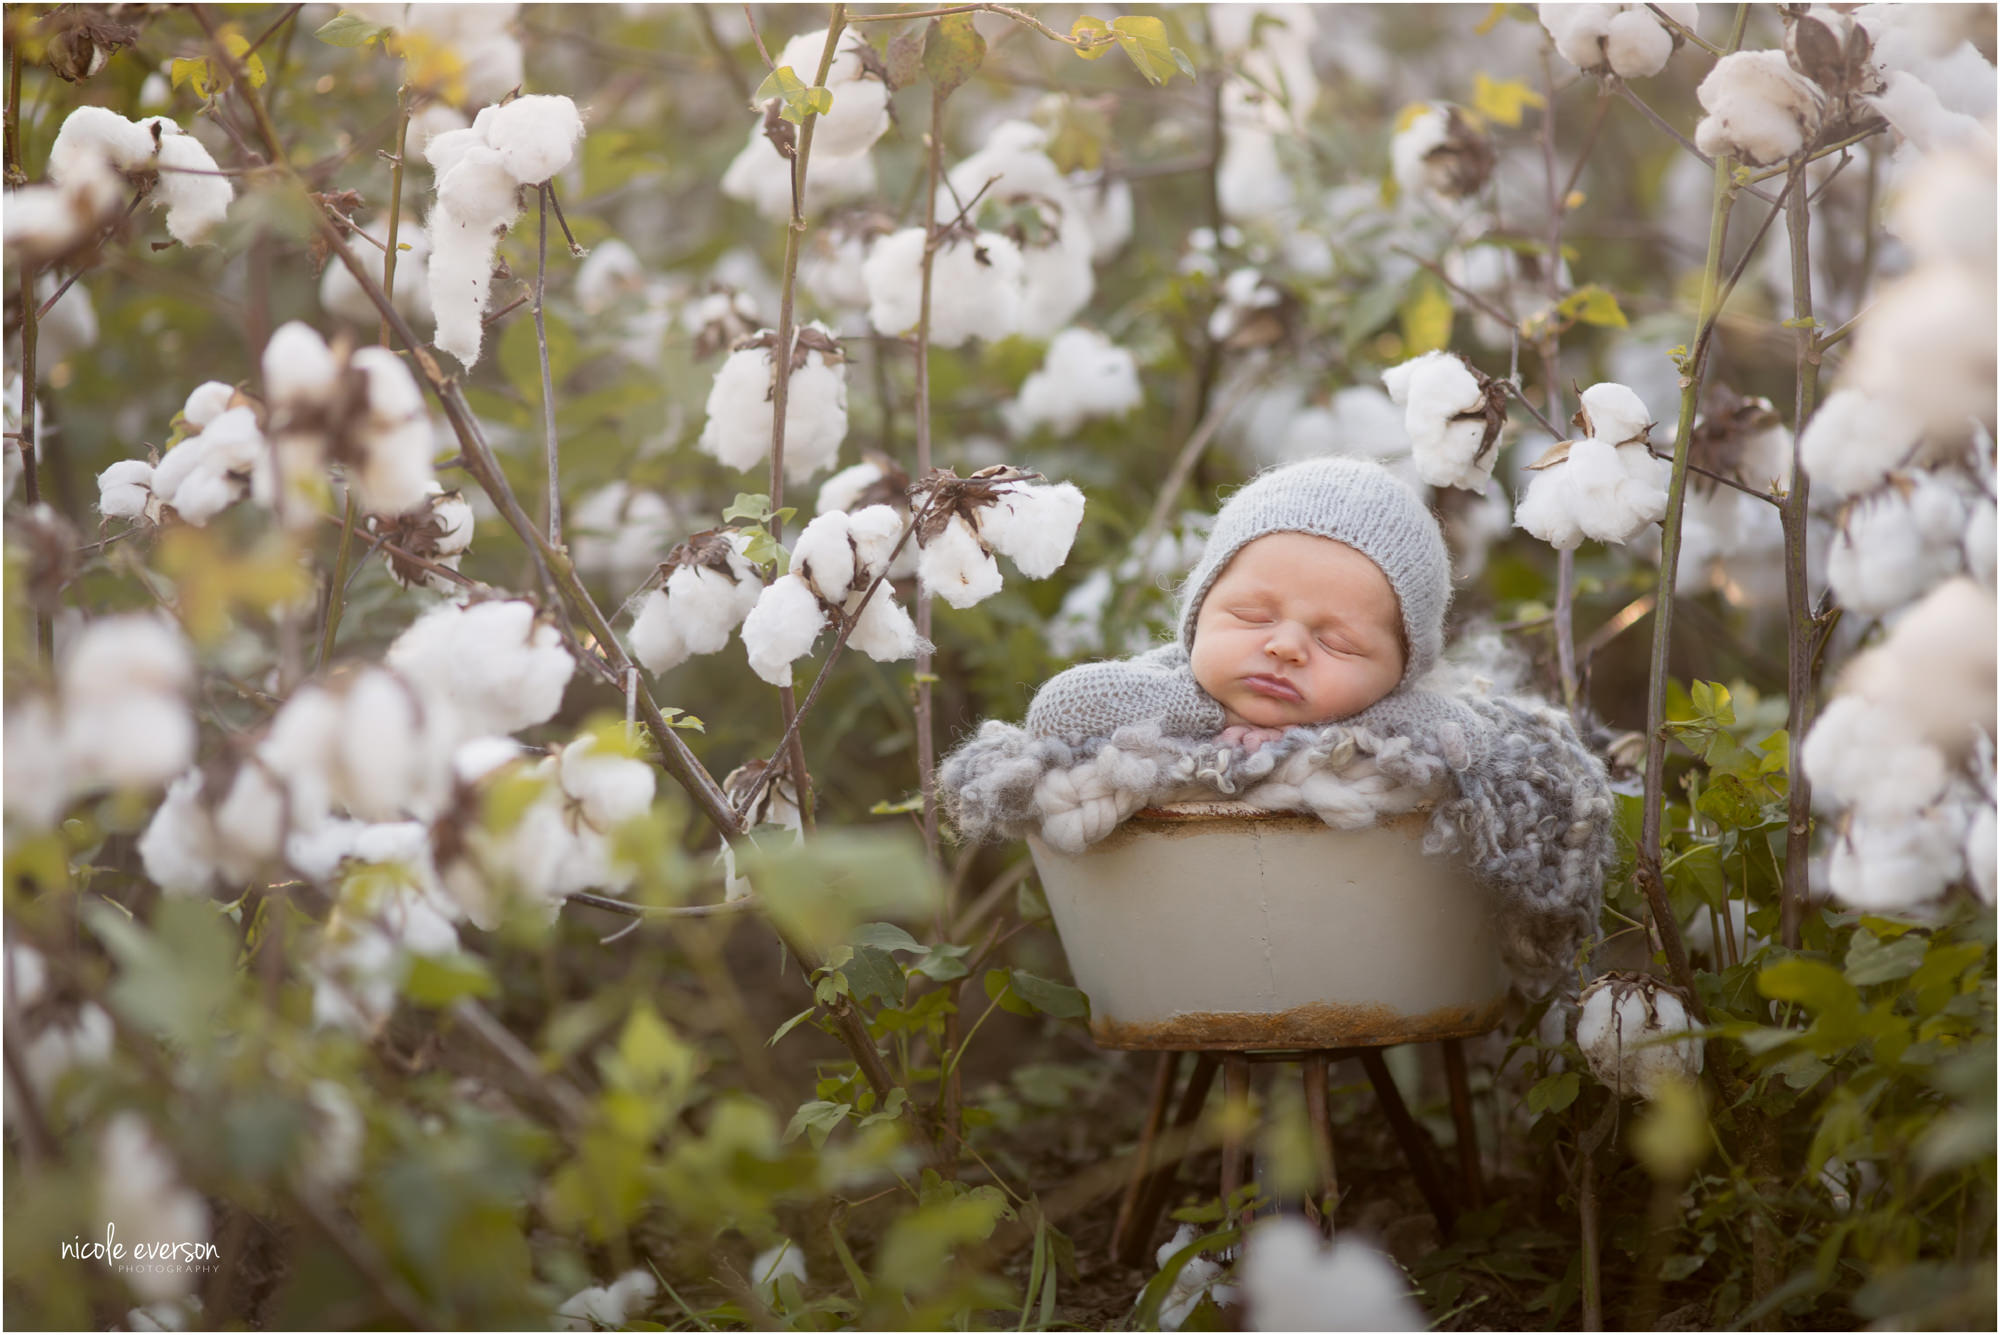 newborn baby photographed outside in a cotton filed sleeping in a vintage wheel barrel